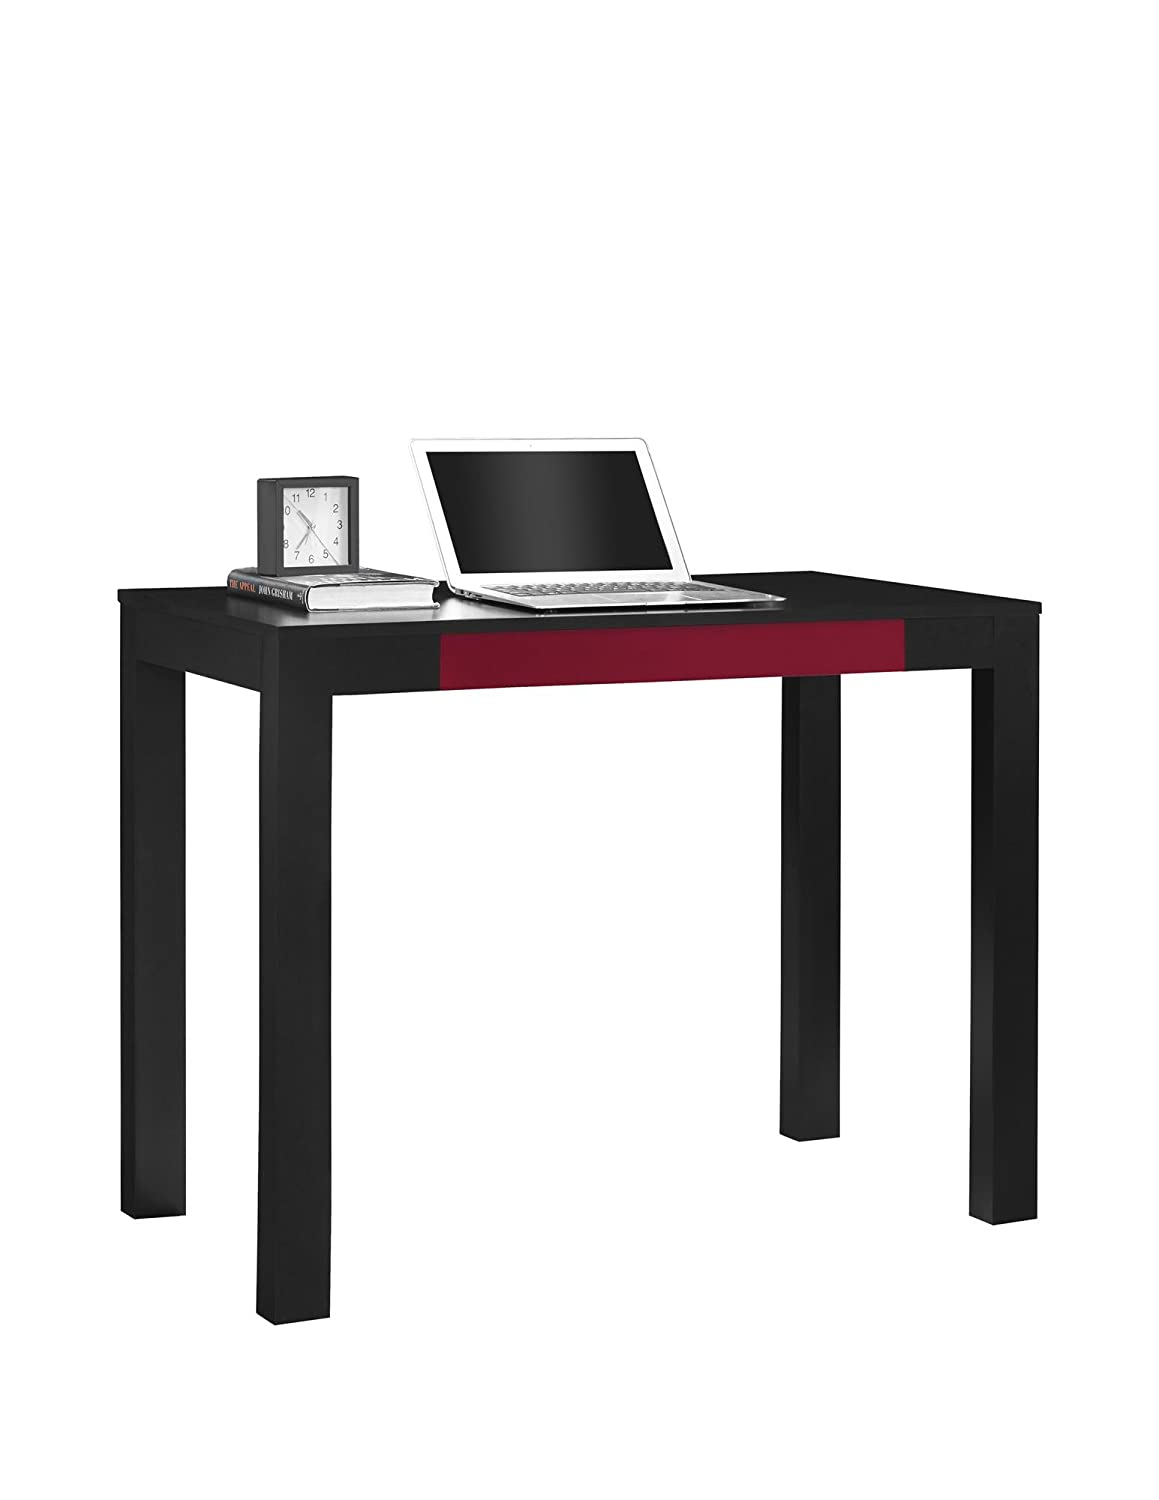 100 desk with drawers on both sides how to set up ikea alex